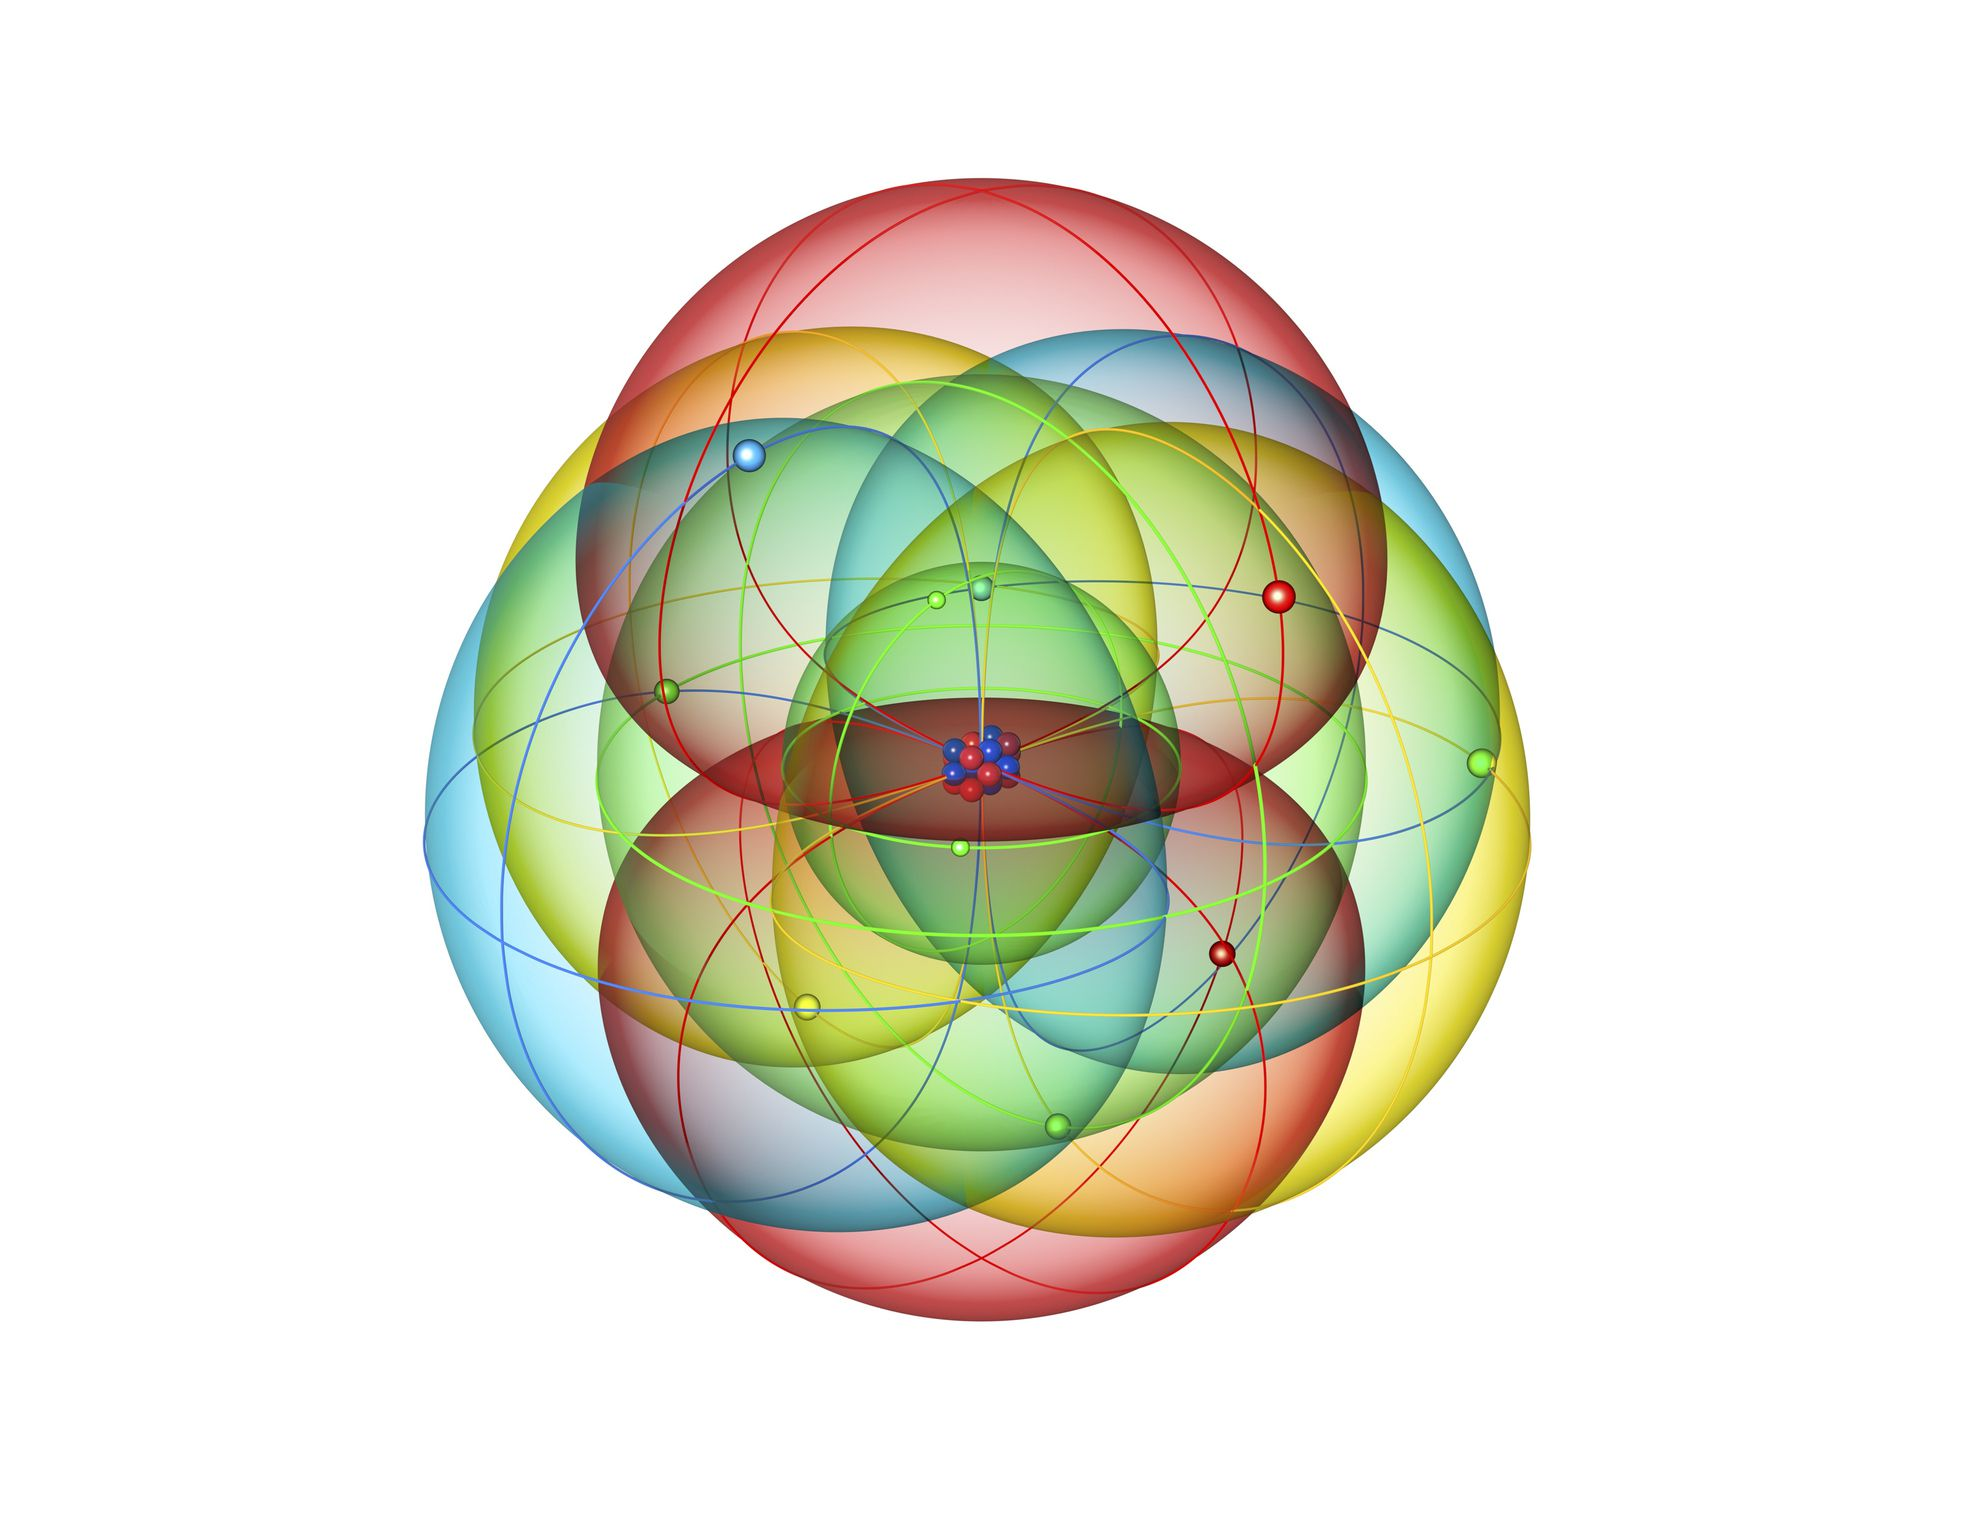 stellar nucleosynthesis helium Stellar nucleosynthesis creates heavier elements from hydrogen and helium  learn how stars use fusion to produce heavier and heavier.